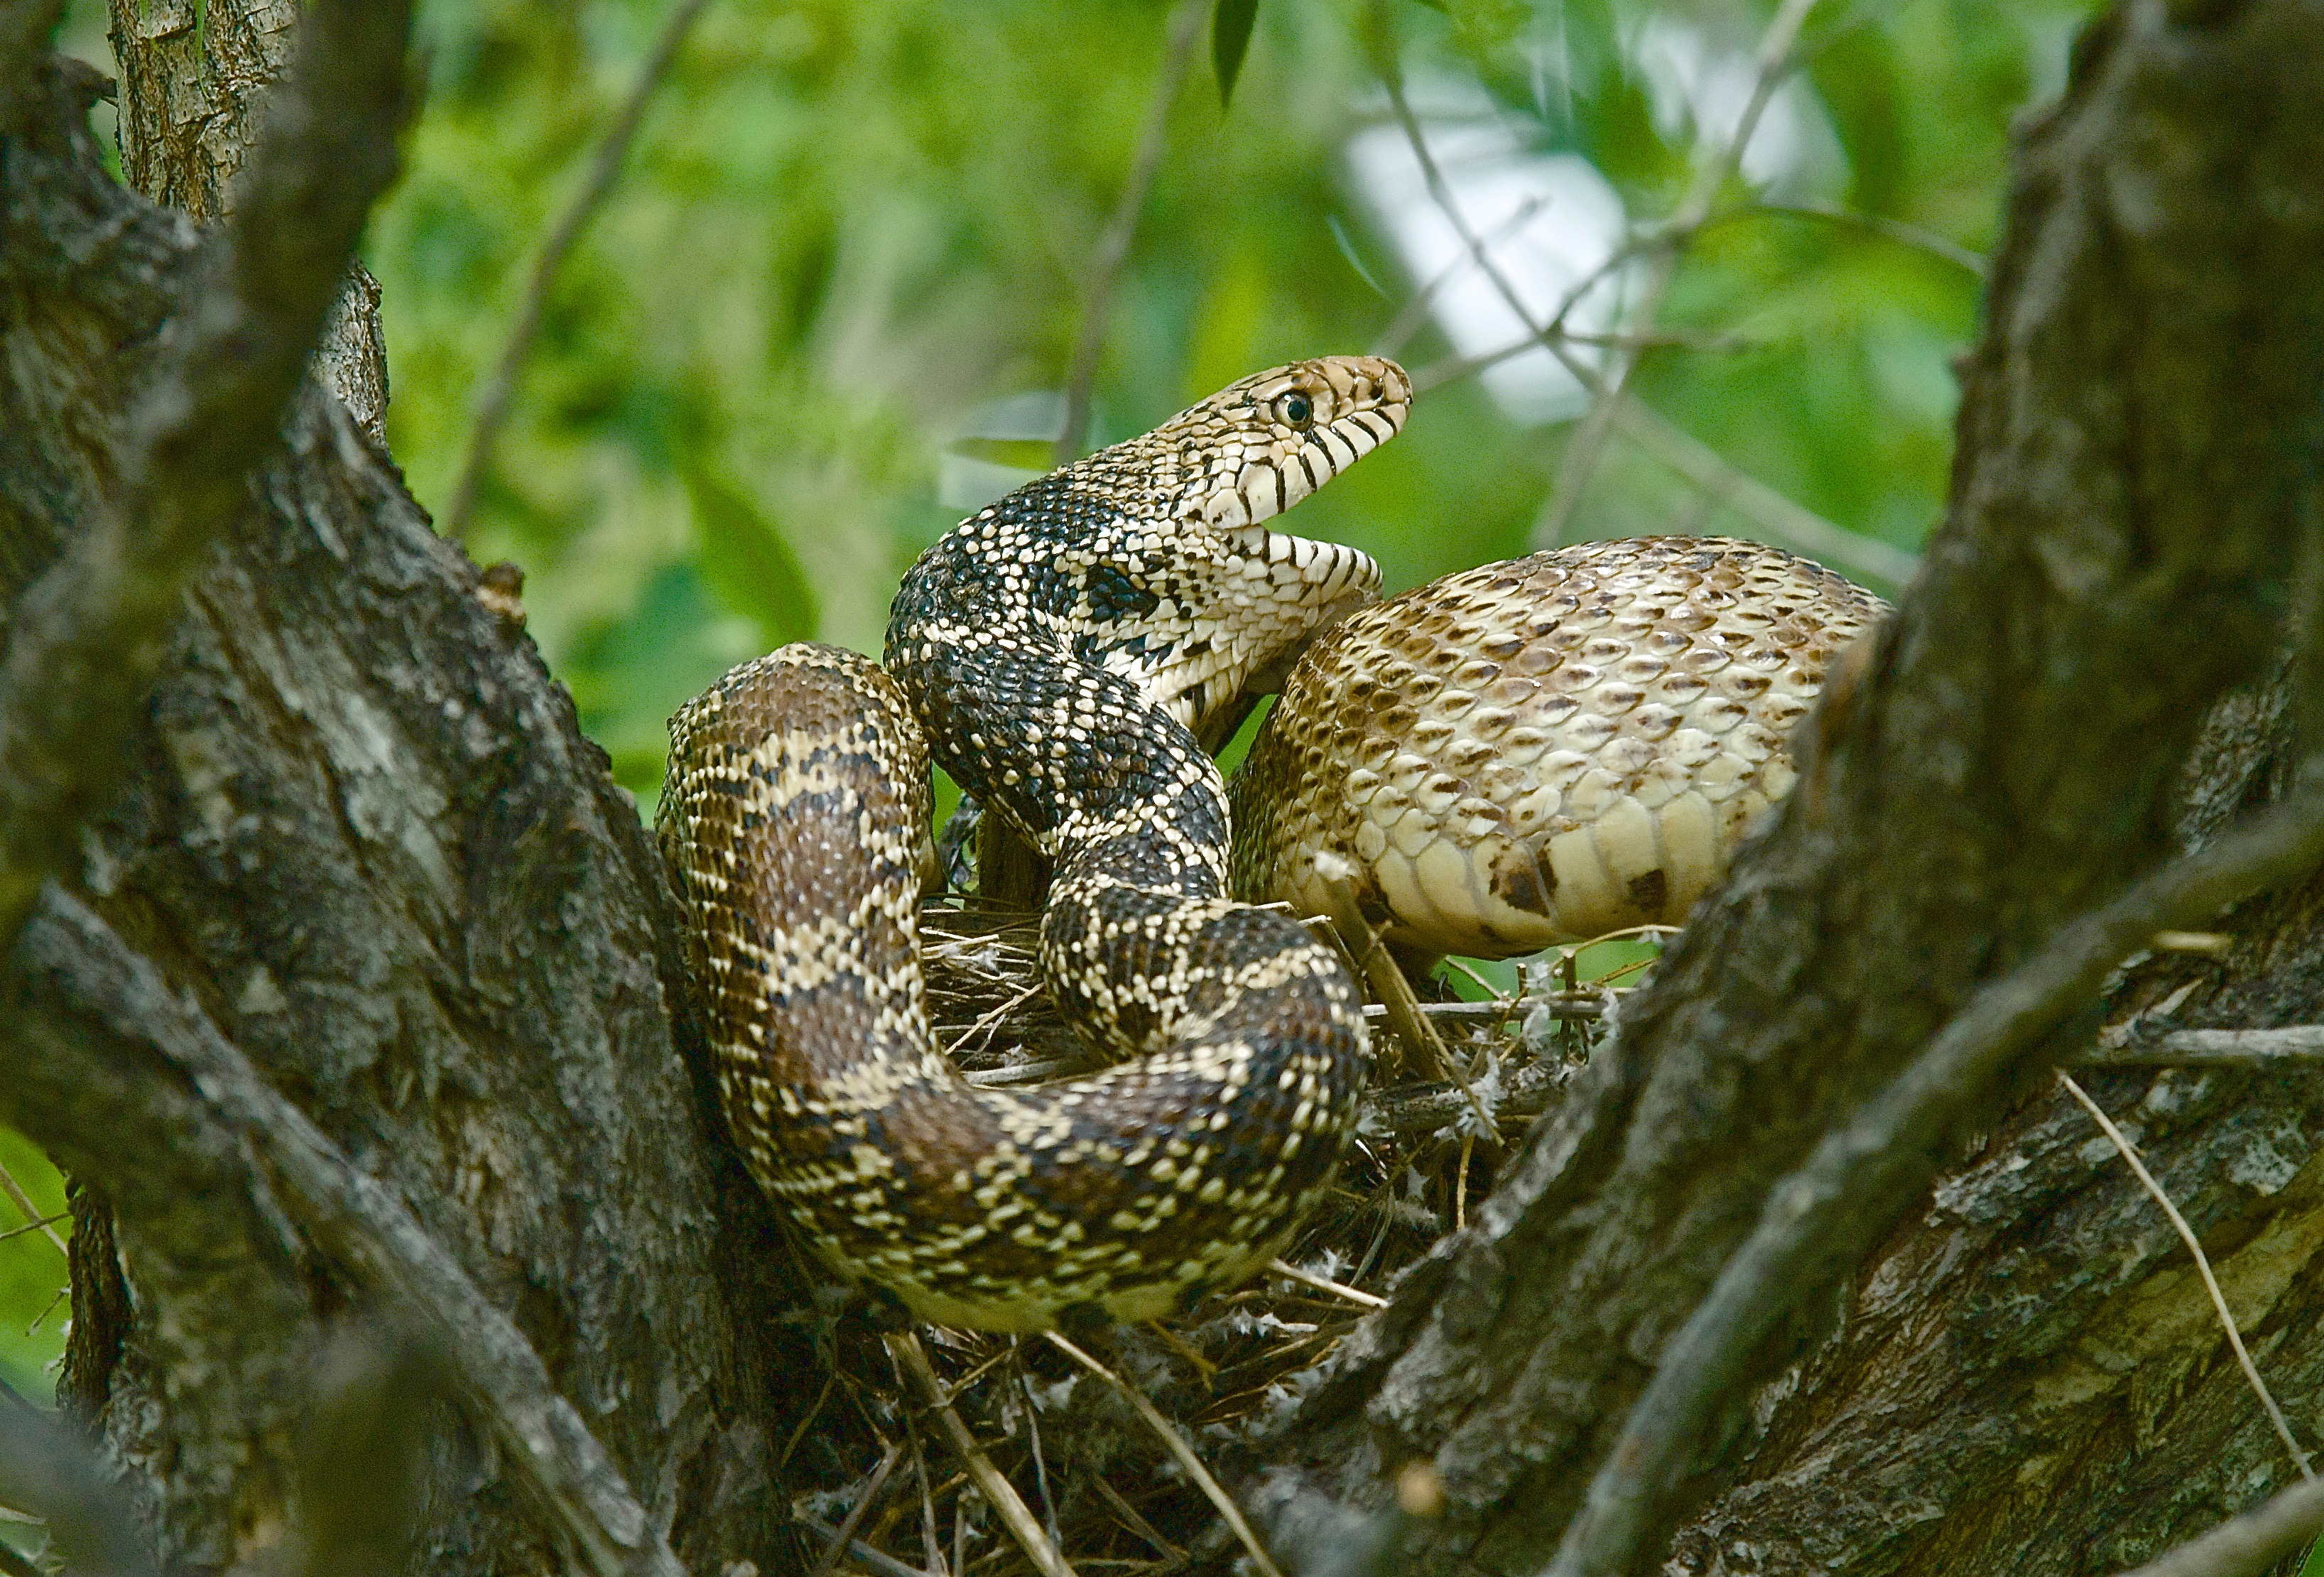 Bull snake (Eating Baby Robins)